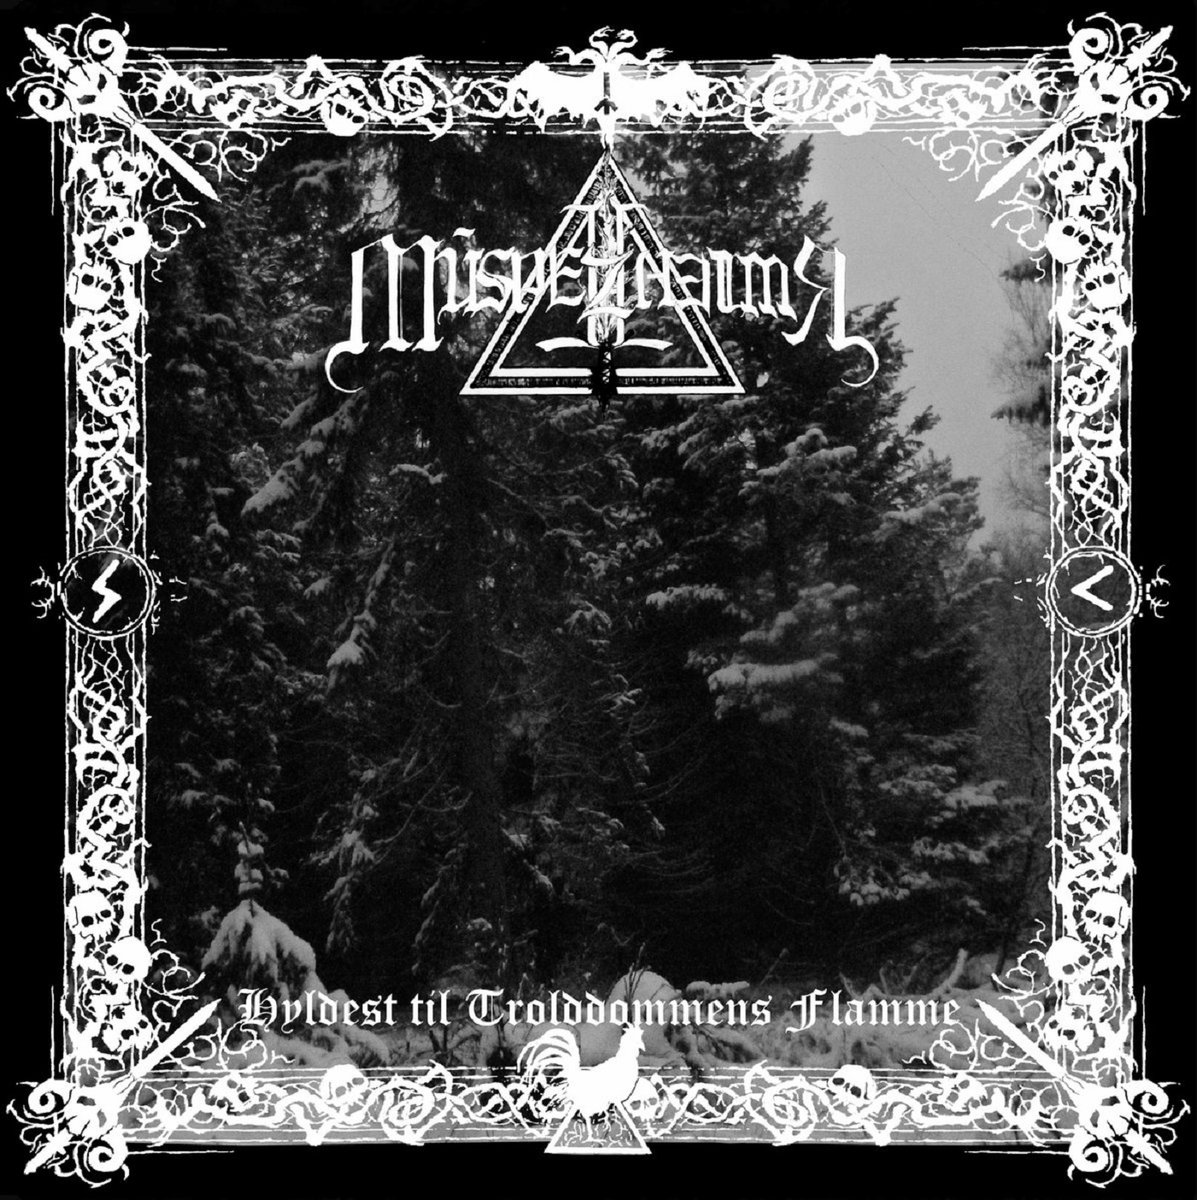 MÚSPELLZHEIMR - Hyldest til Trolddommens Flamme / Demo Compilation (Double CD)